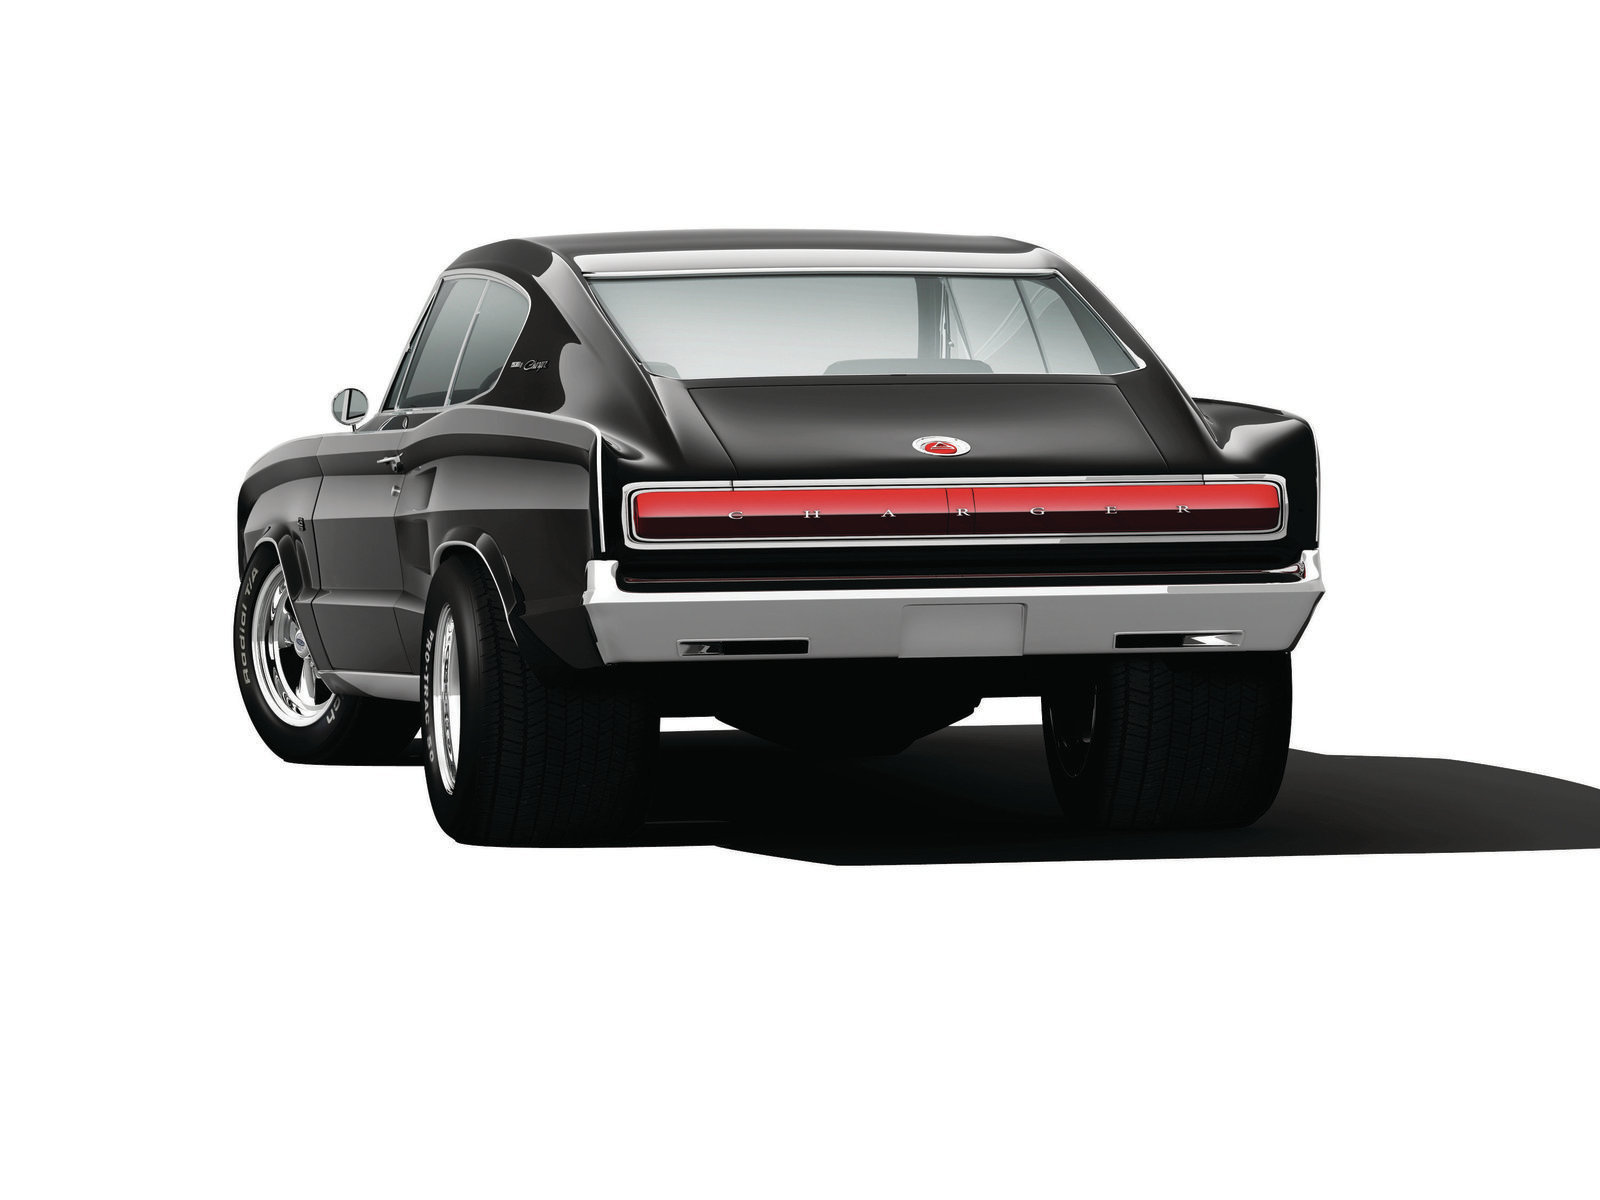 Try not to pass your soda through your nose when you compare the rear stance of the JHRS Charger with Billy Bob's swap meet special on the right. This is just wrong, but we still see it everywhere. If you see this car on the road, the banjo music won't be far behind.